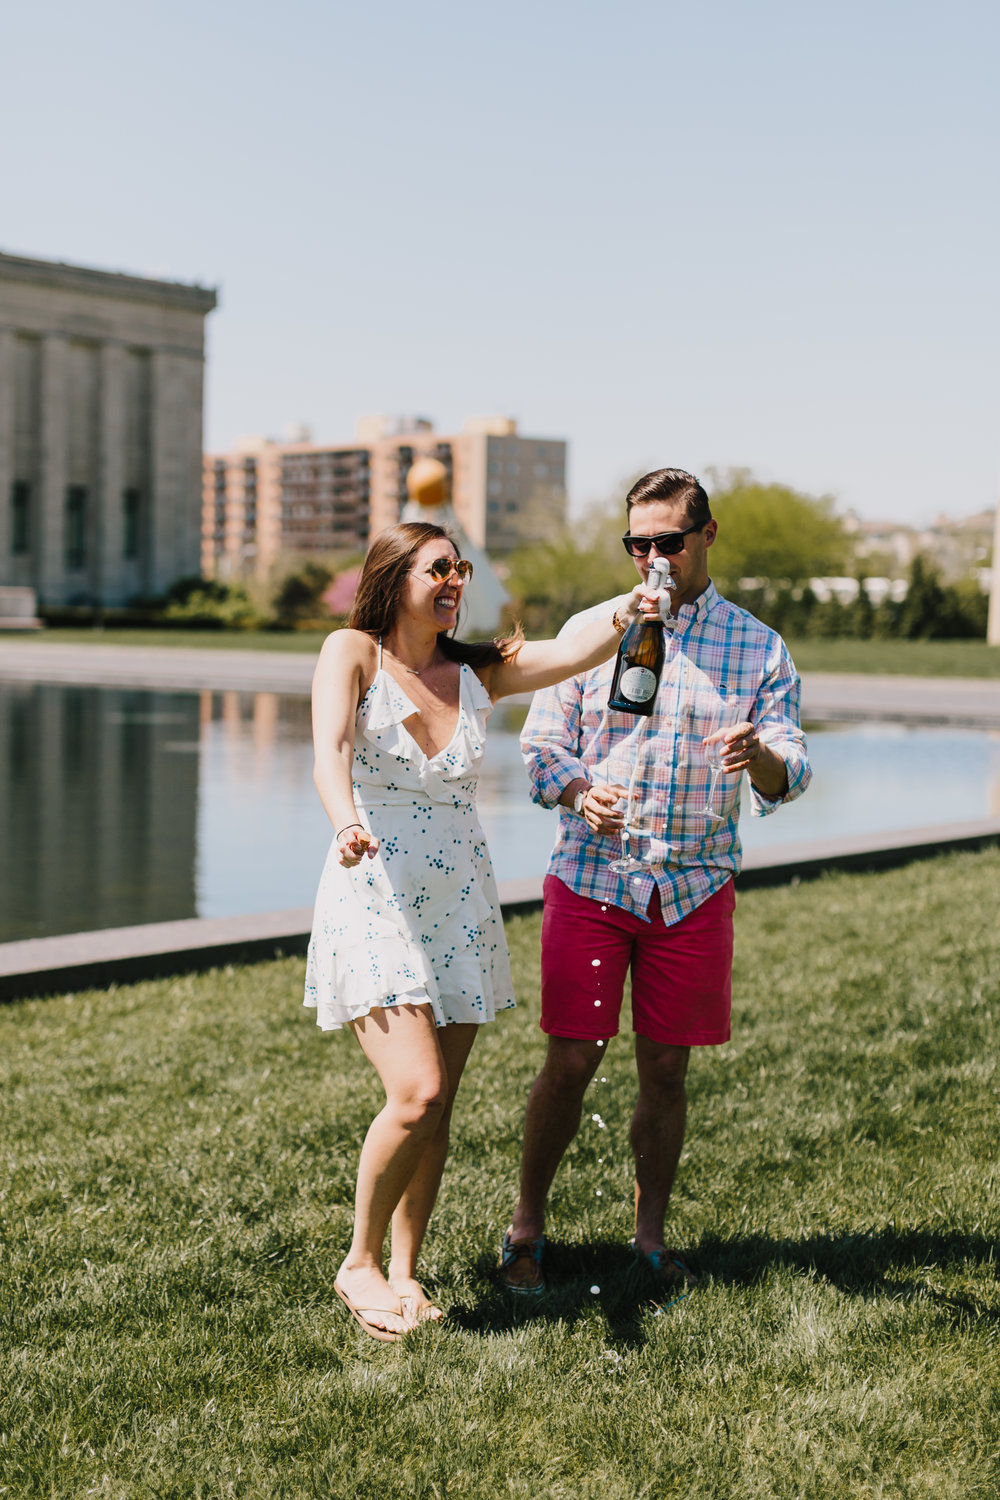 alyssa barletter photography proposal nelson atkins museum kansas city missouri how he asked-11.jpg